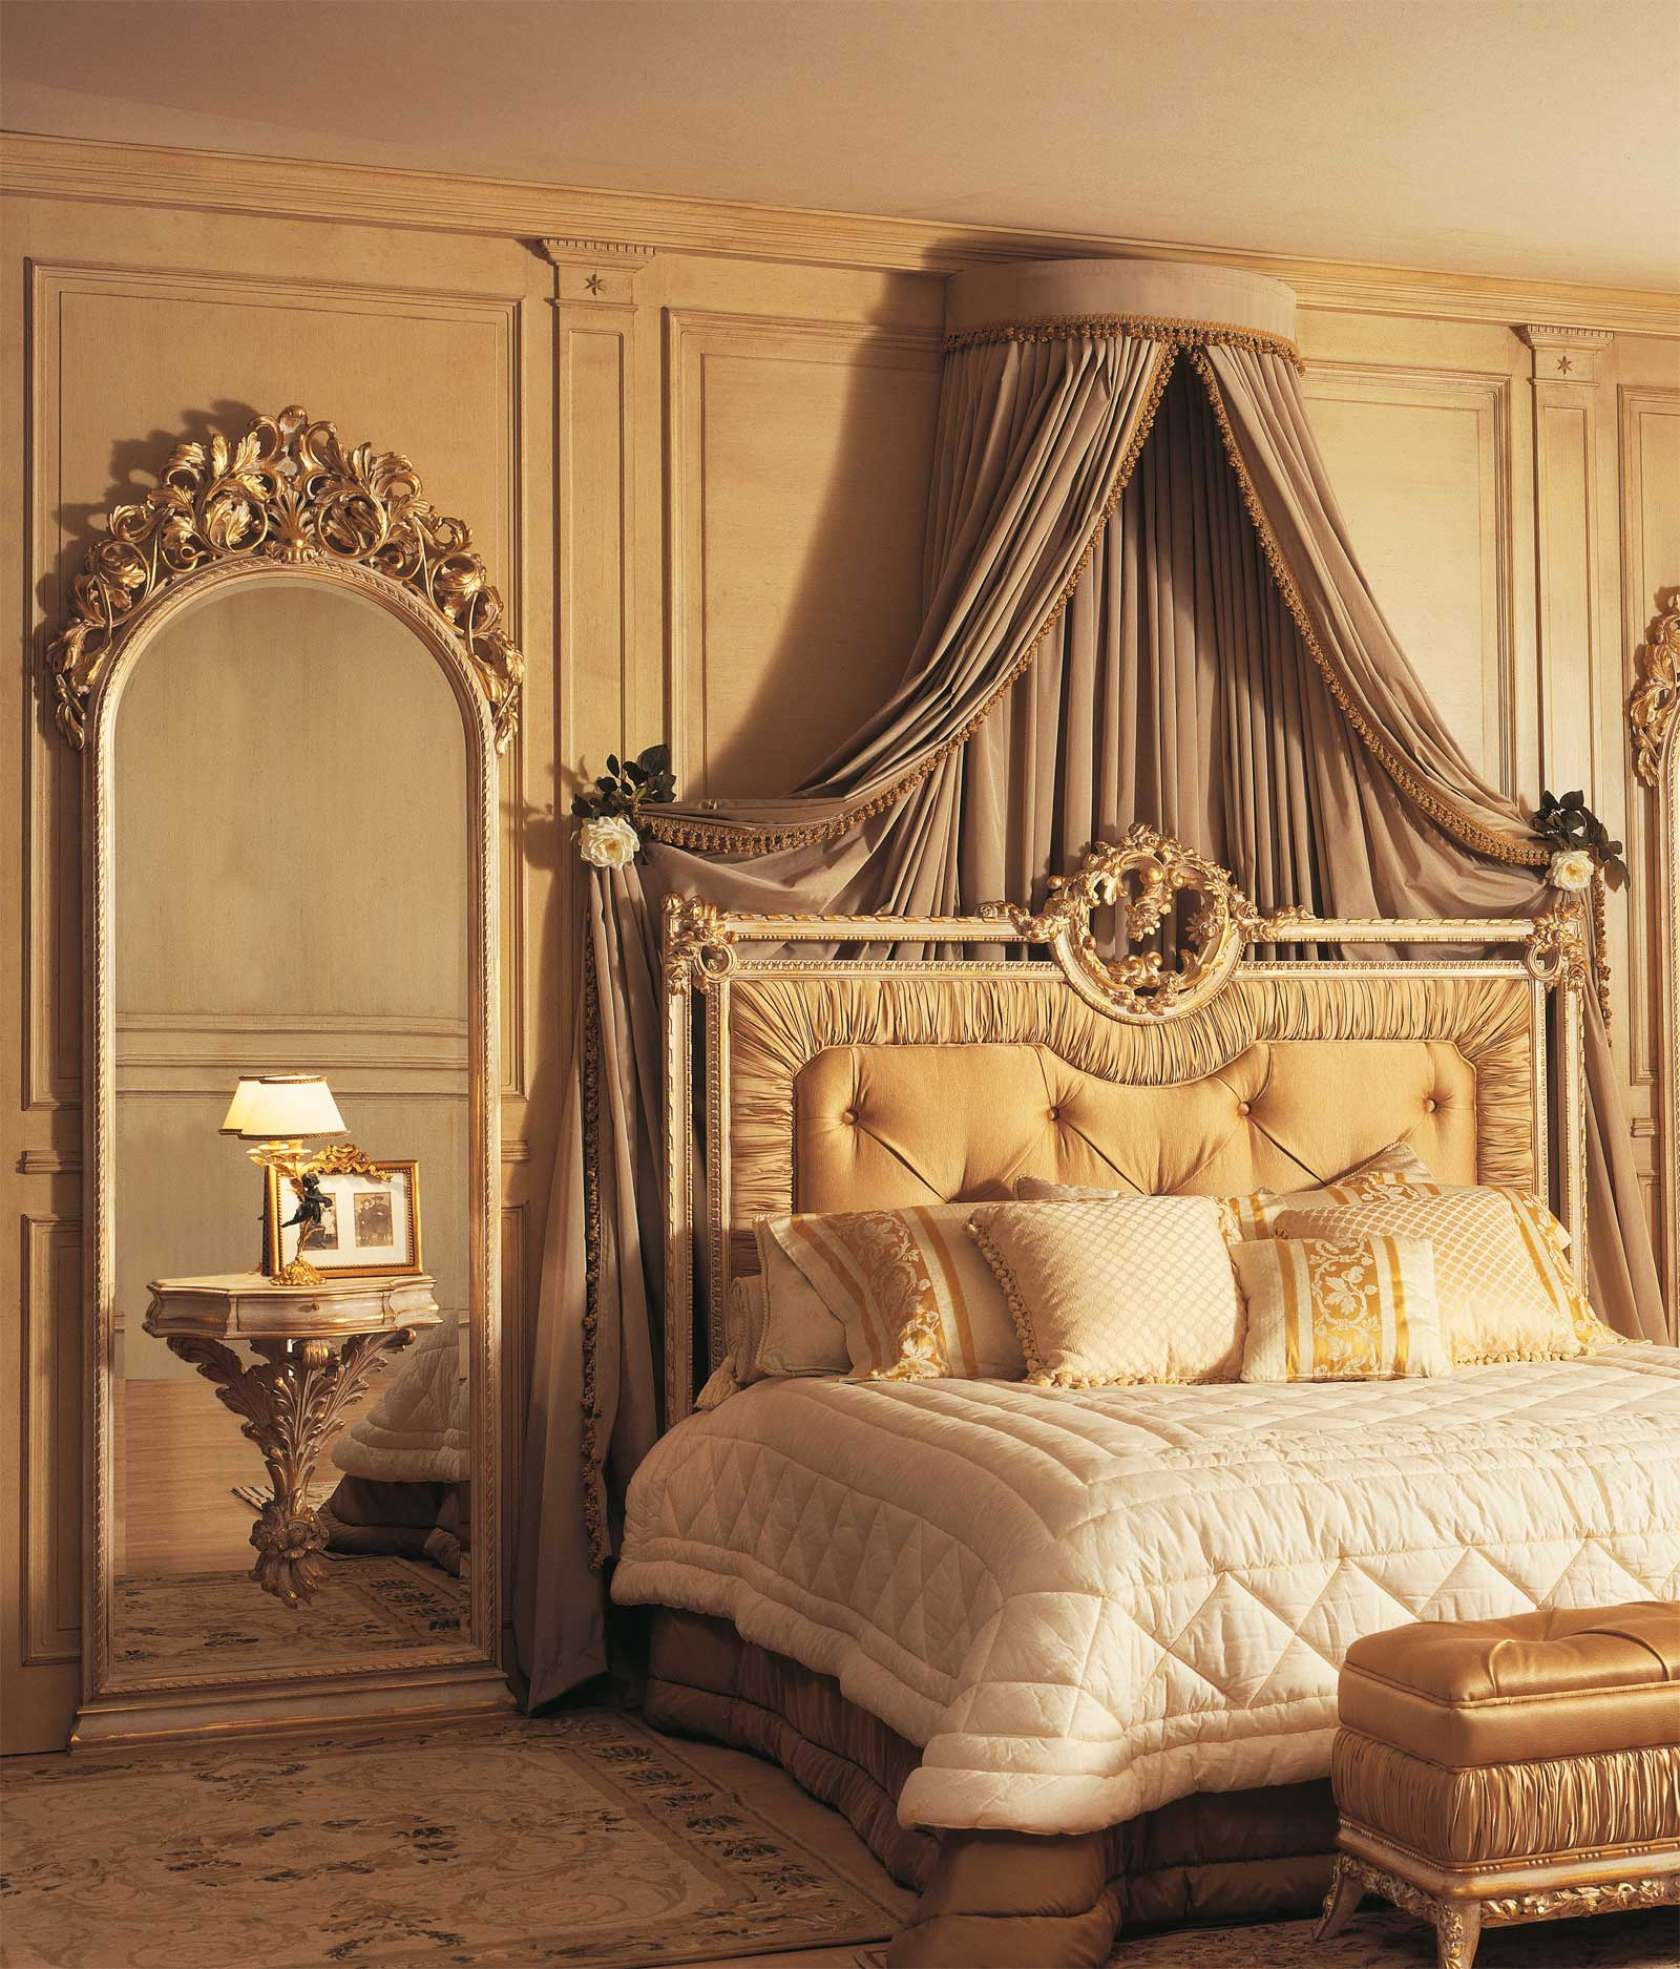 decorative with of decorating photo bedroom home mirrors and wall ideas art for painting view furniture